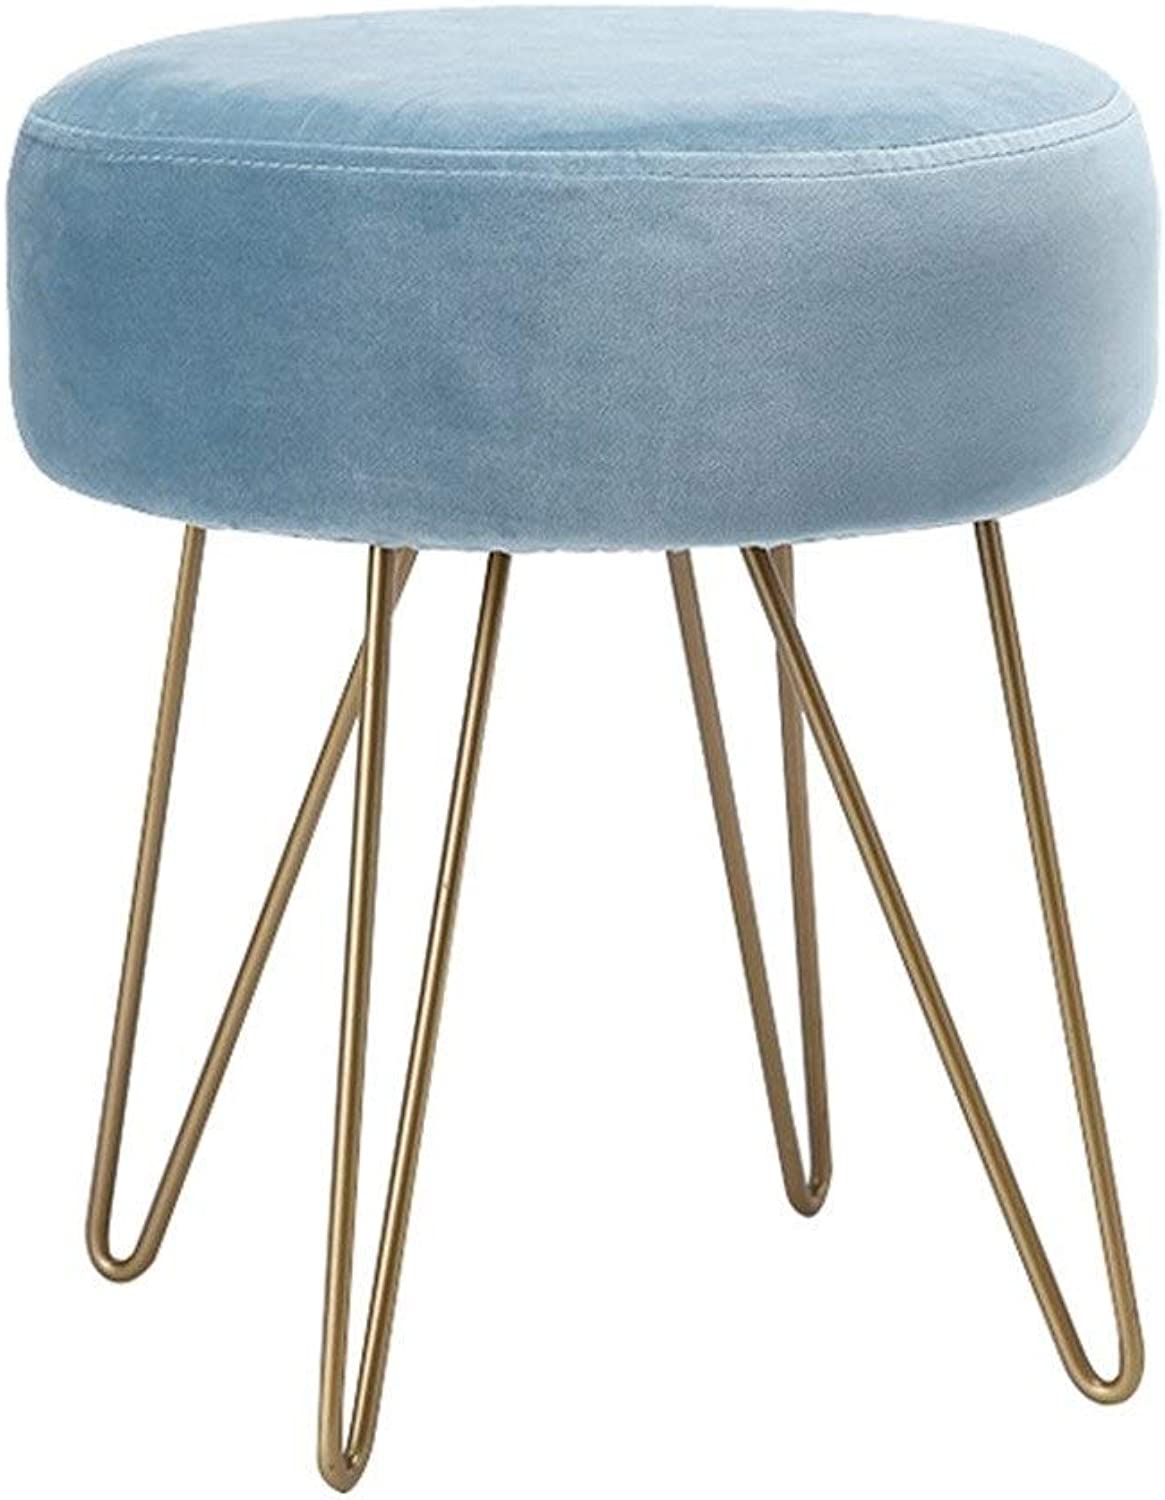 Iron Stool - Family Dressing Stool, Sofa Bench, Footrest, High Rebound Cushion (color   C)